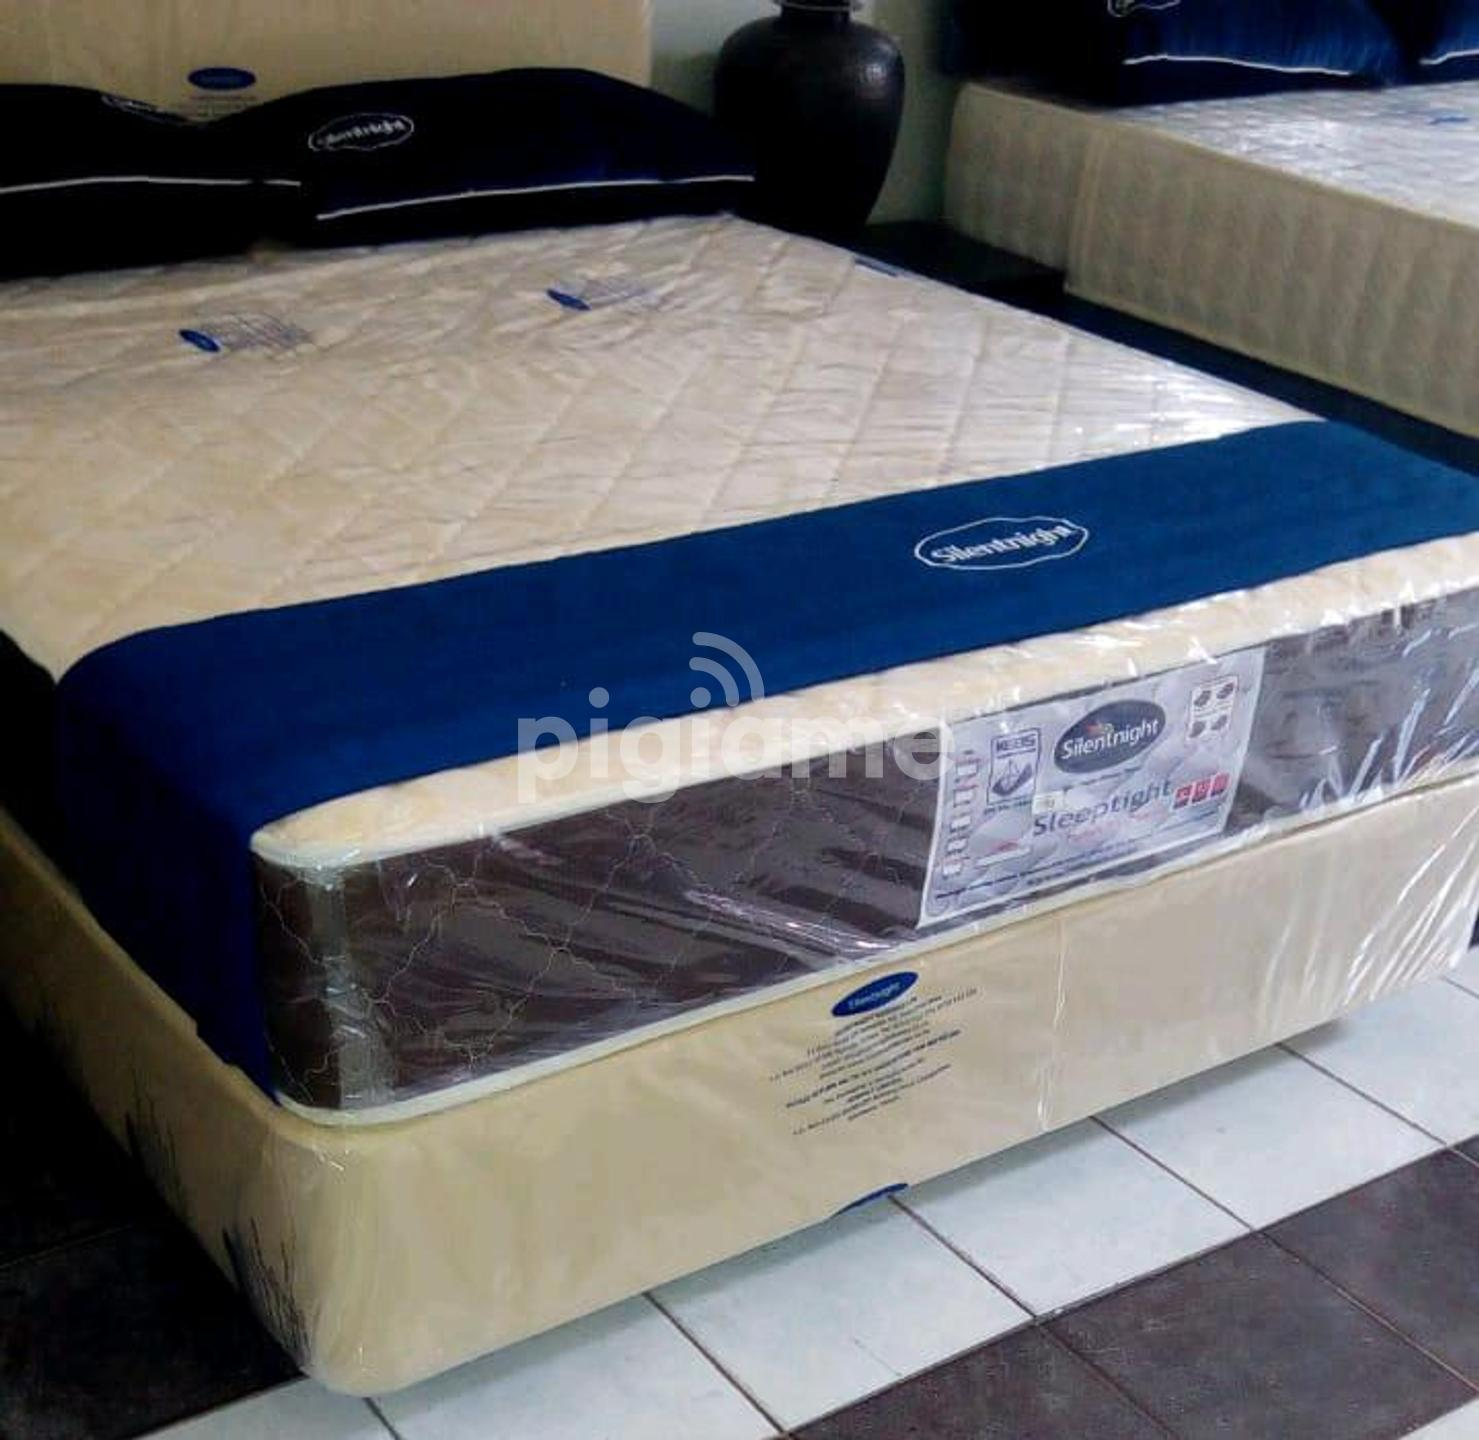 Spring Mattress Plus Bed Free Delivery